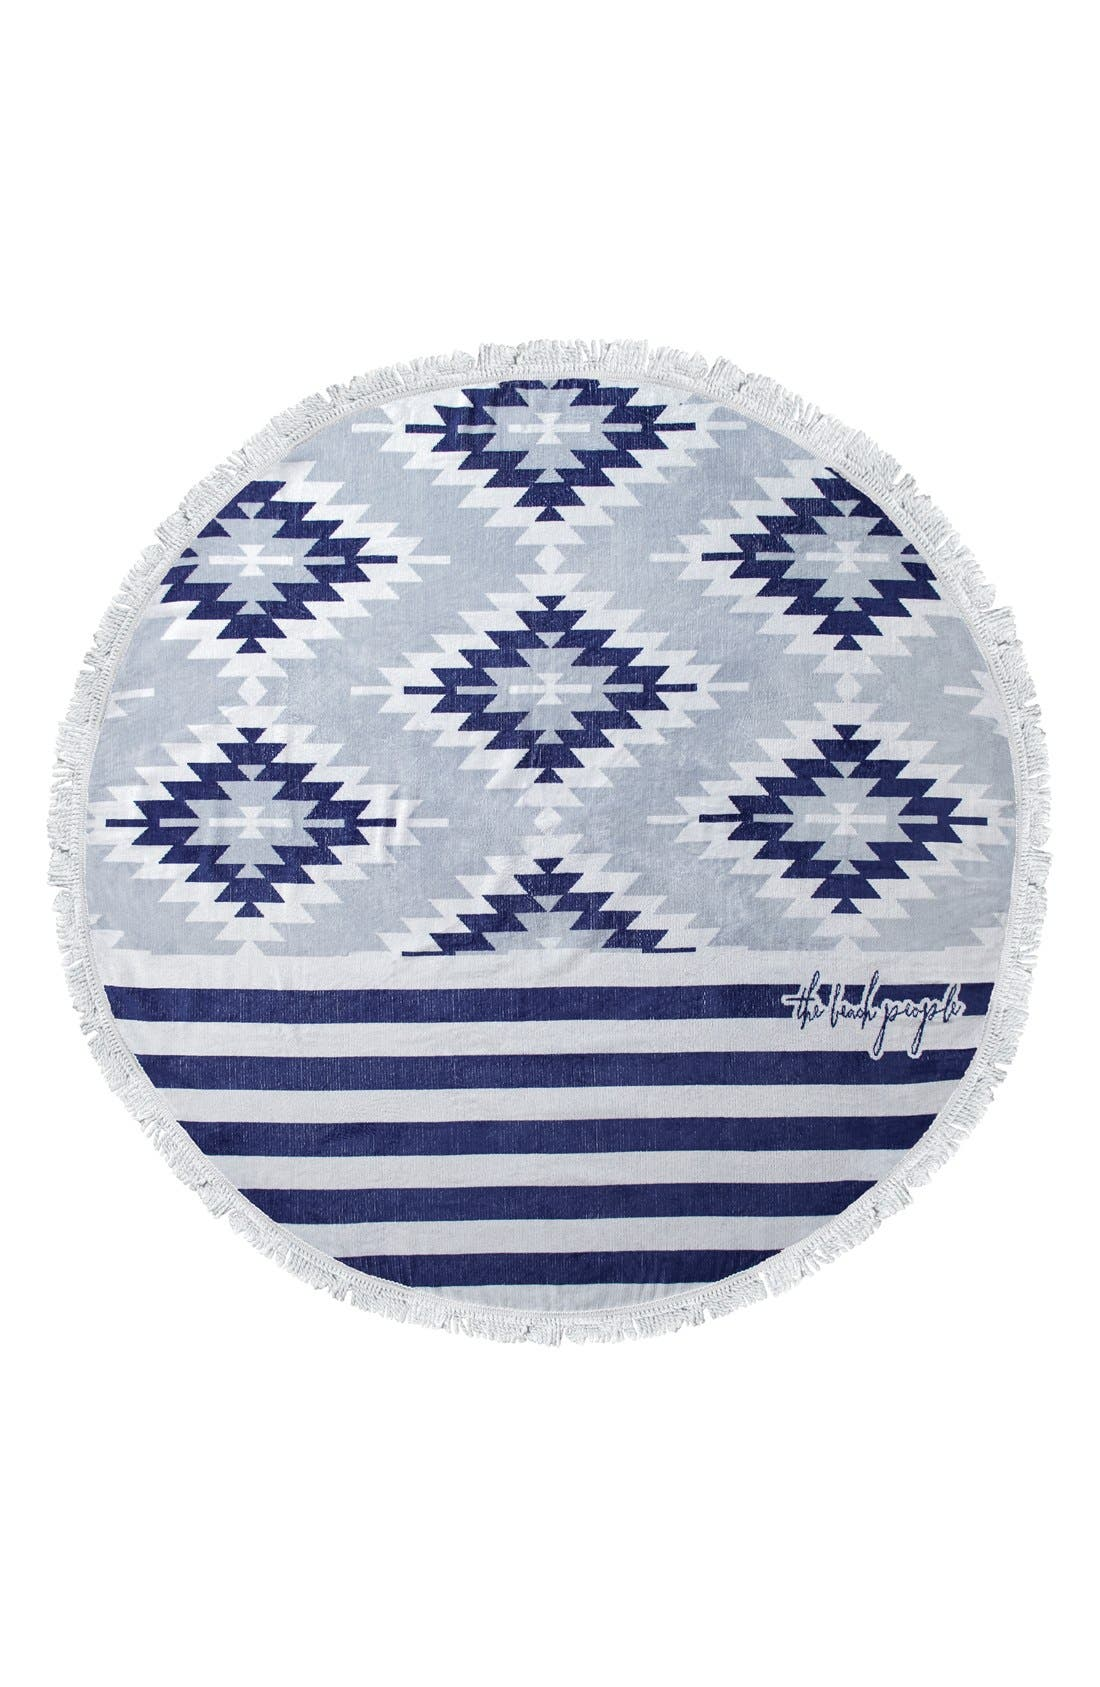 The Beach People 'Montauk' Round Beach Towel